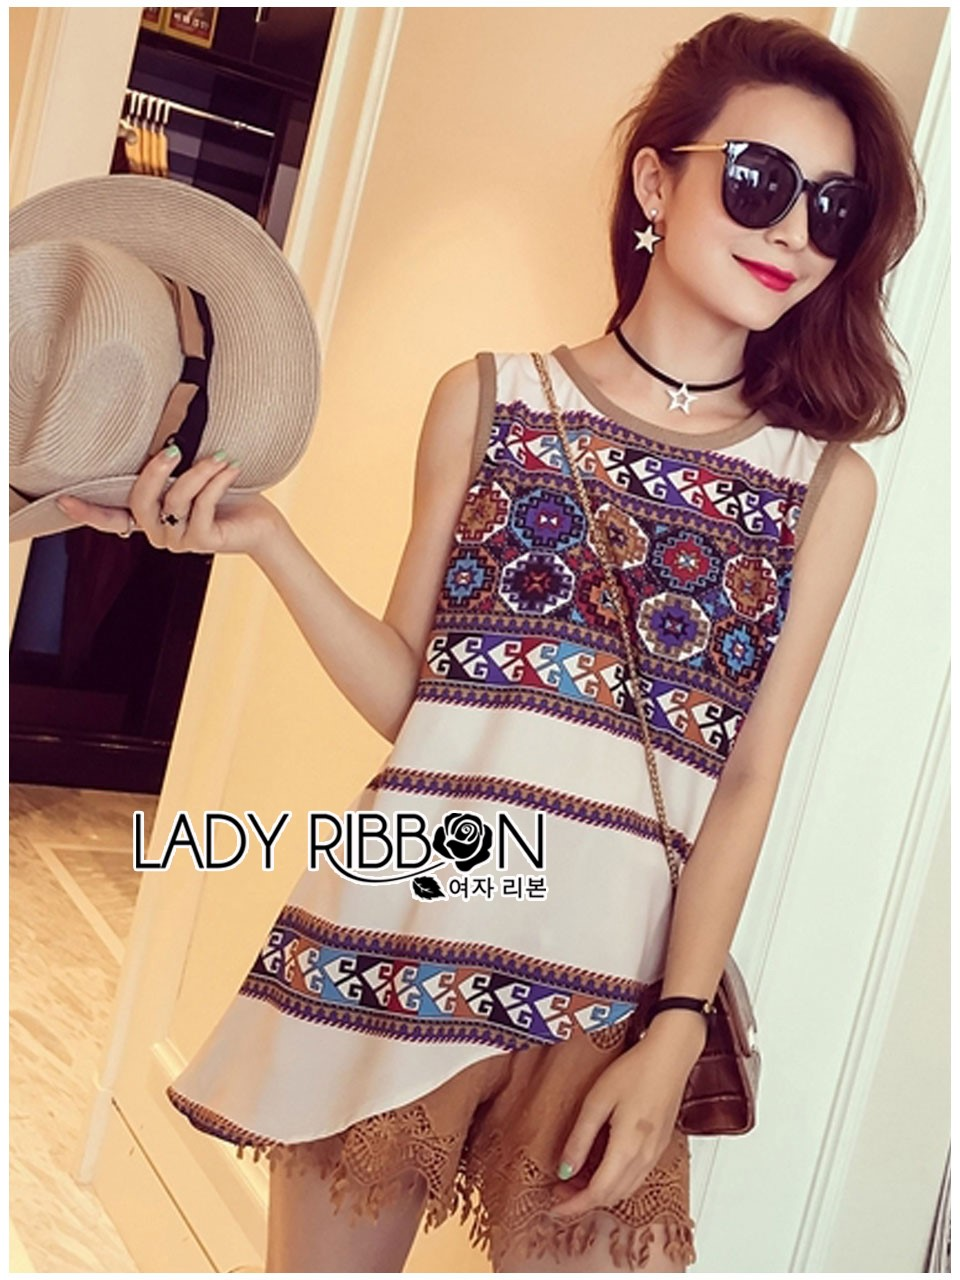 &#x1F380 Lady Ribbon's Made &#x1F380 Lady Helena Hippie Chic Printed Tank Top and Embroidered Cotton Shorts Set สีขาว